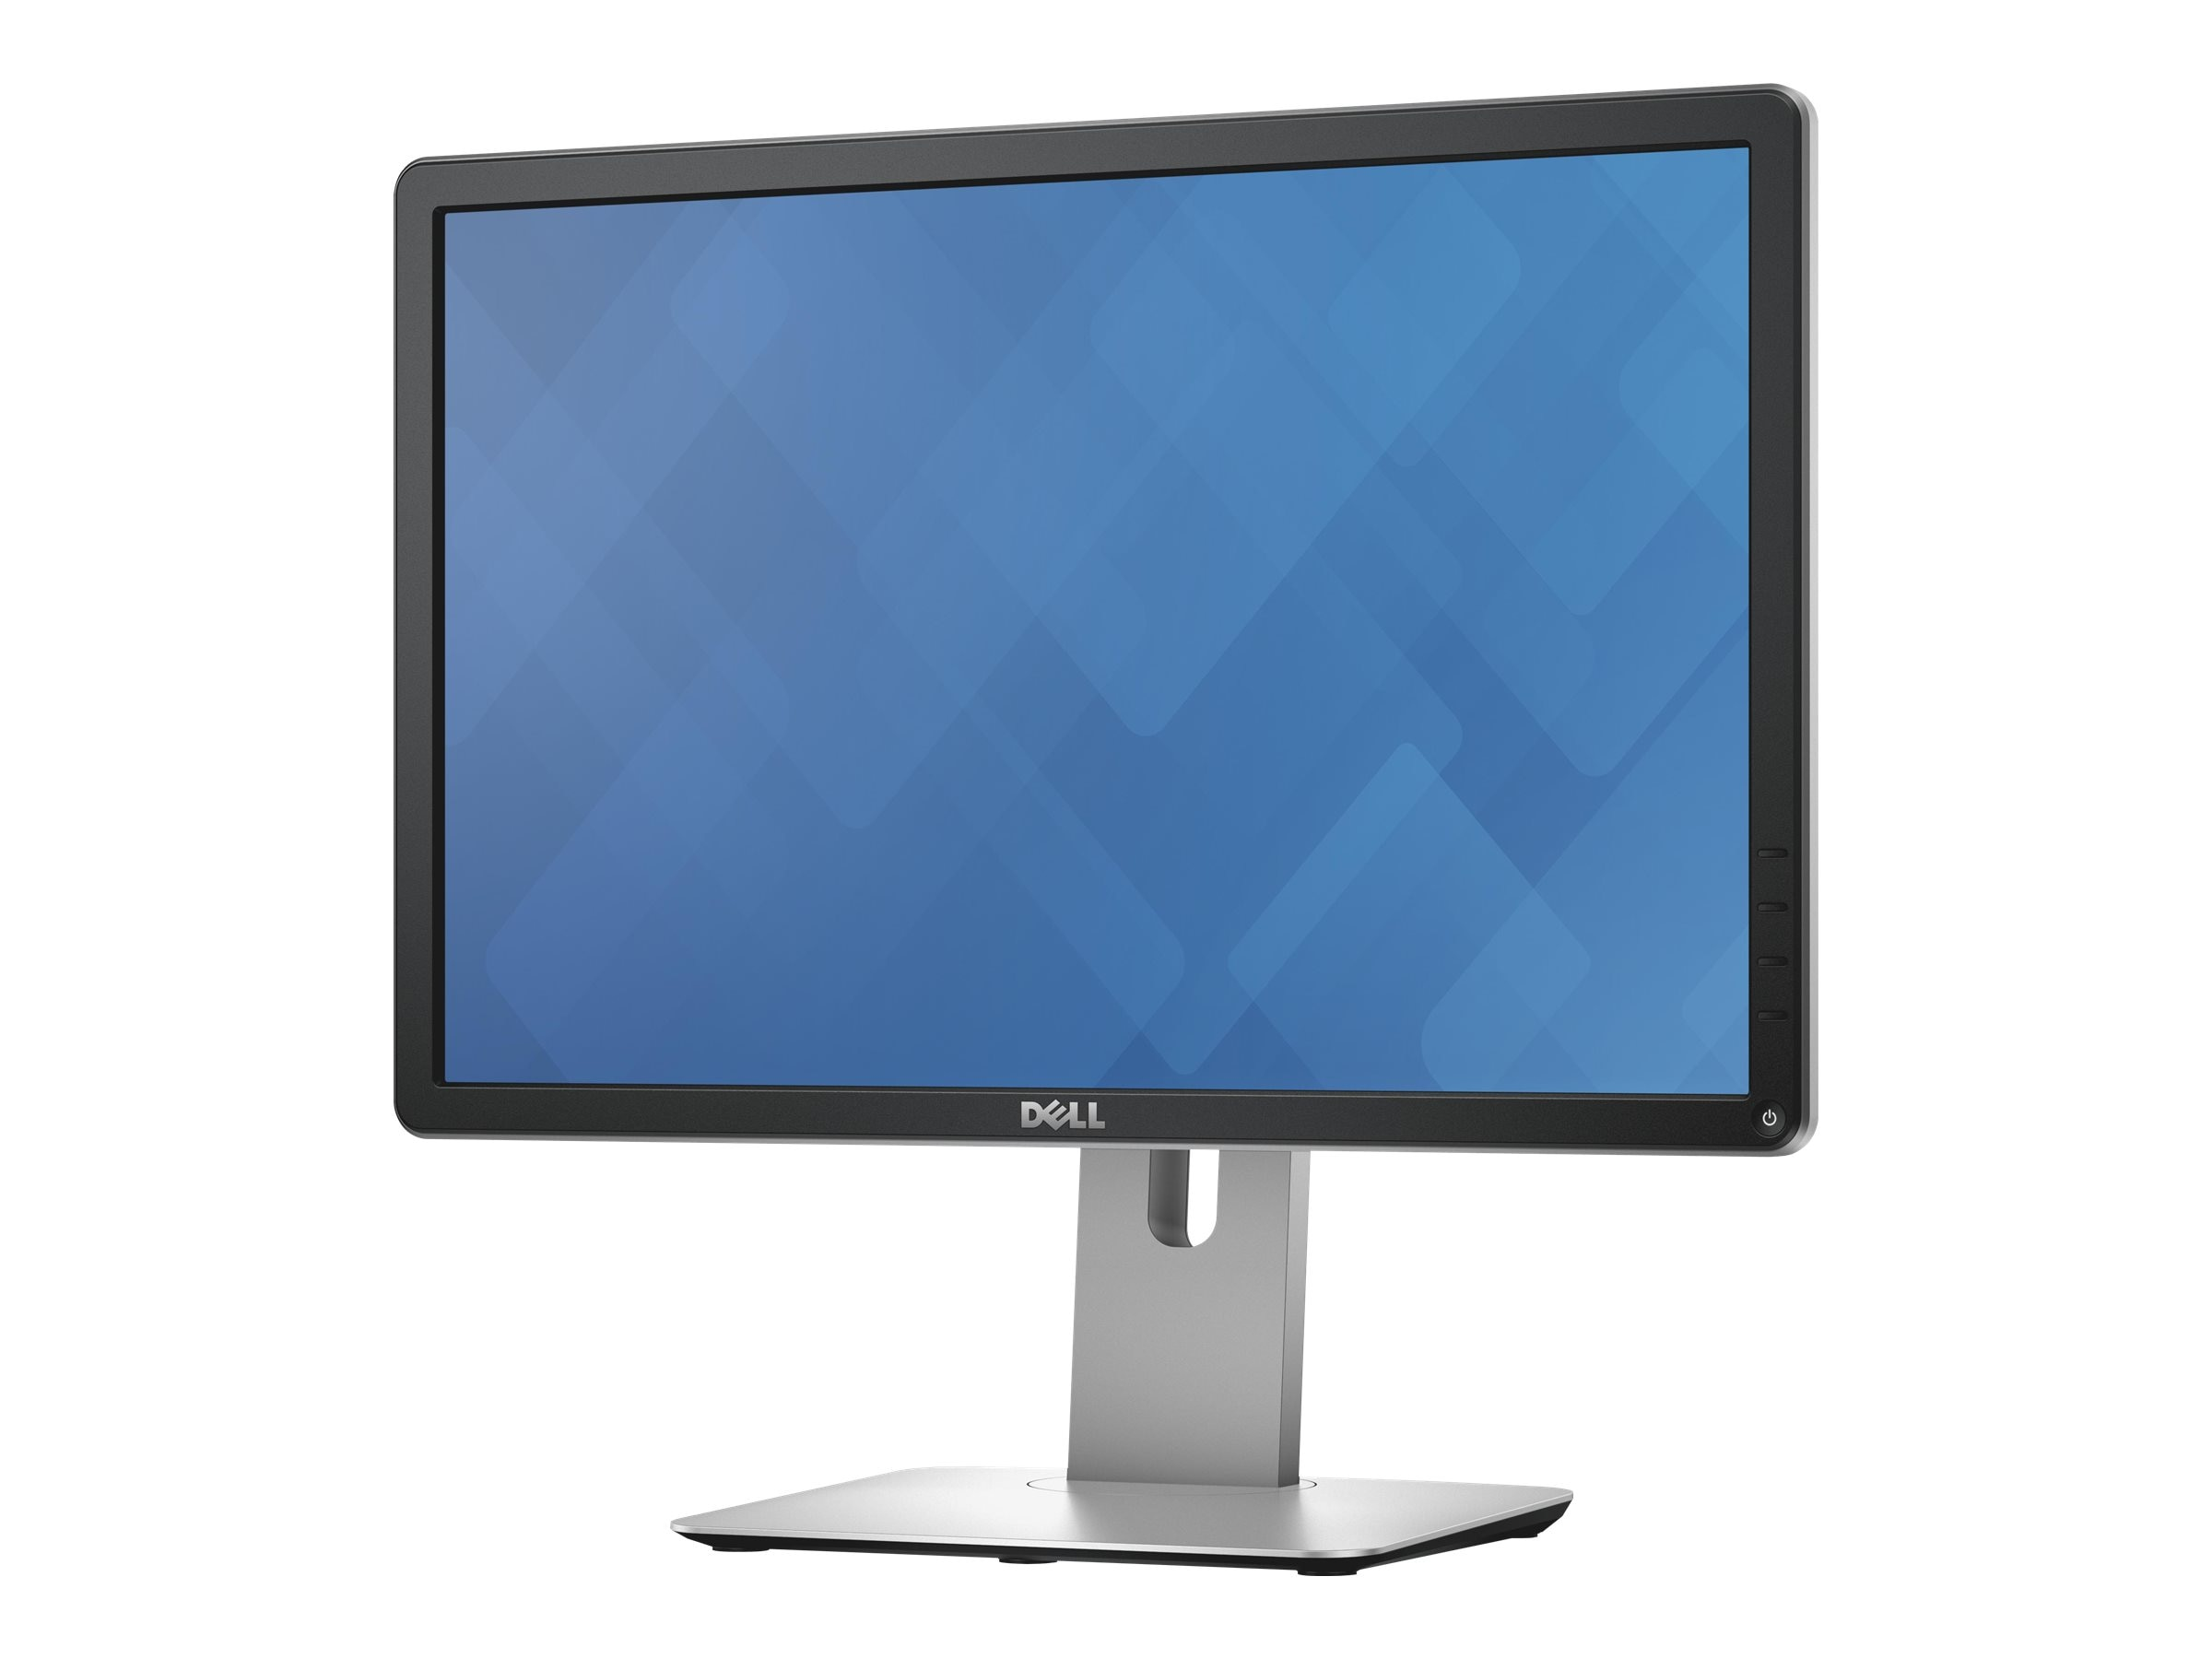 Dell 19.5 P2016 LED-LCD Monitor, Black, P2016, 28025445, Monitors - LED-LCD